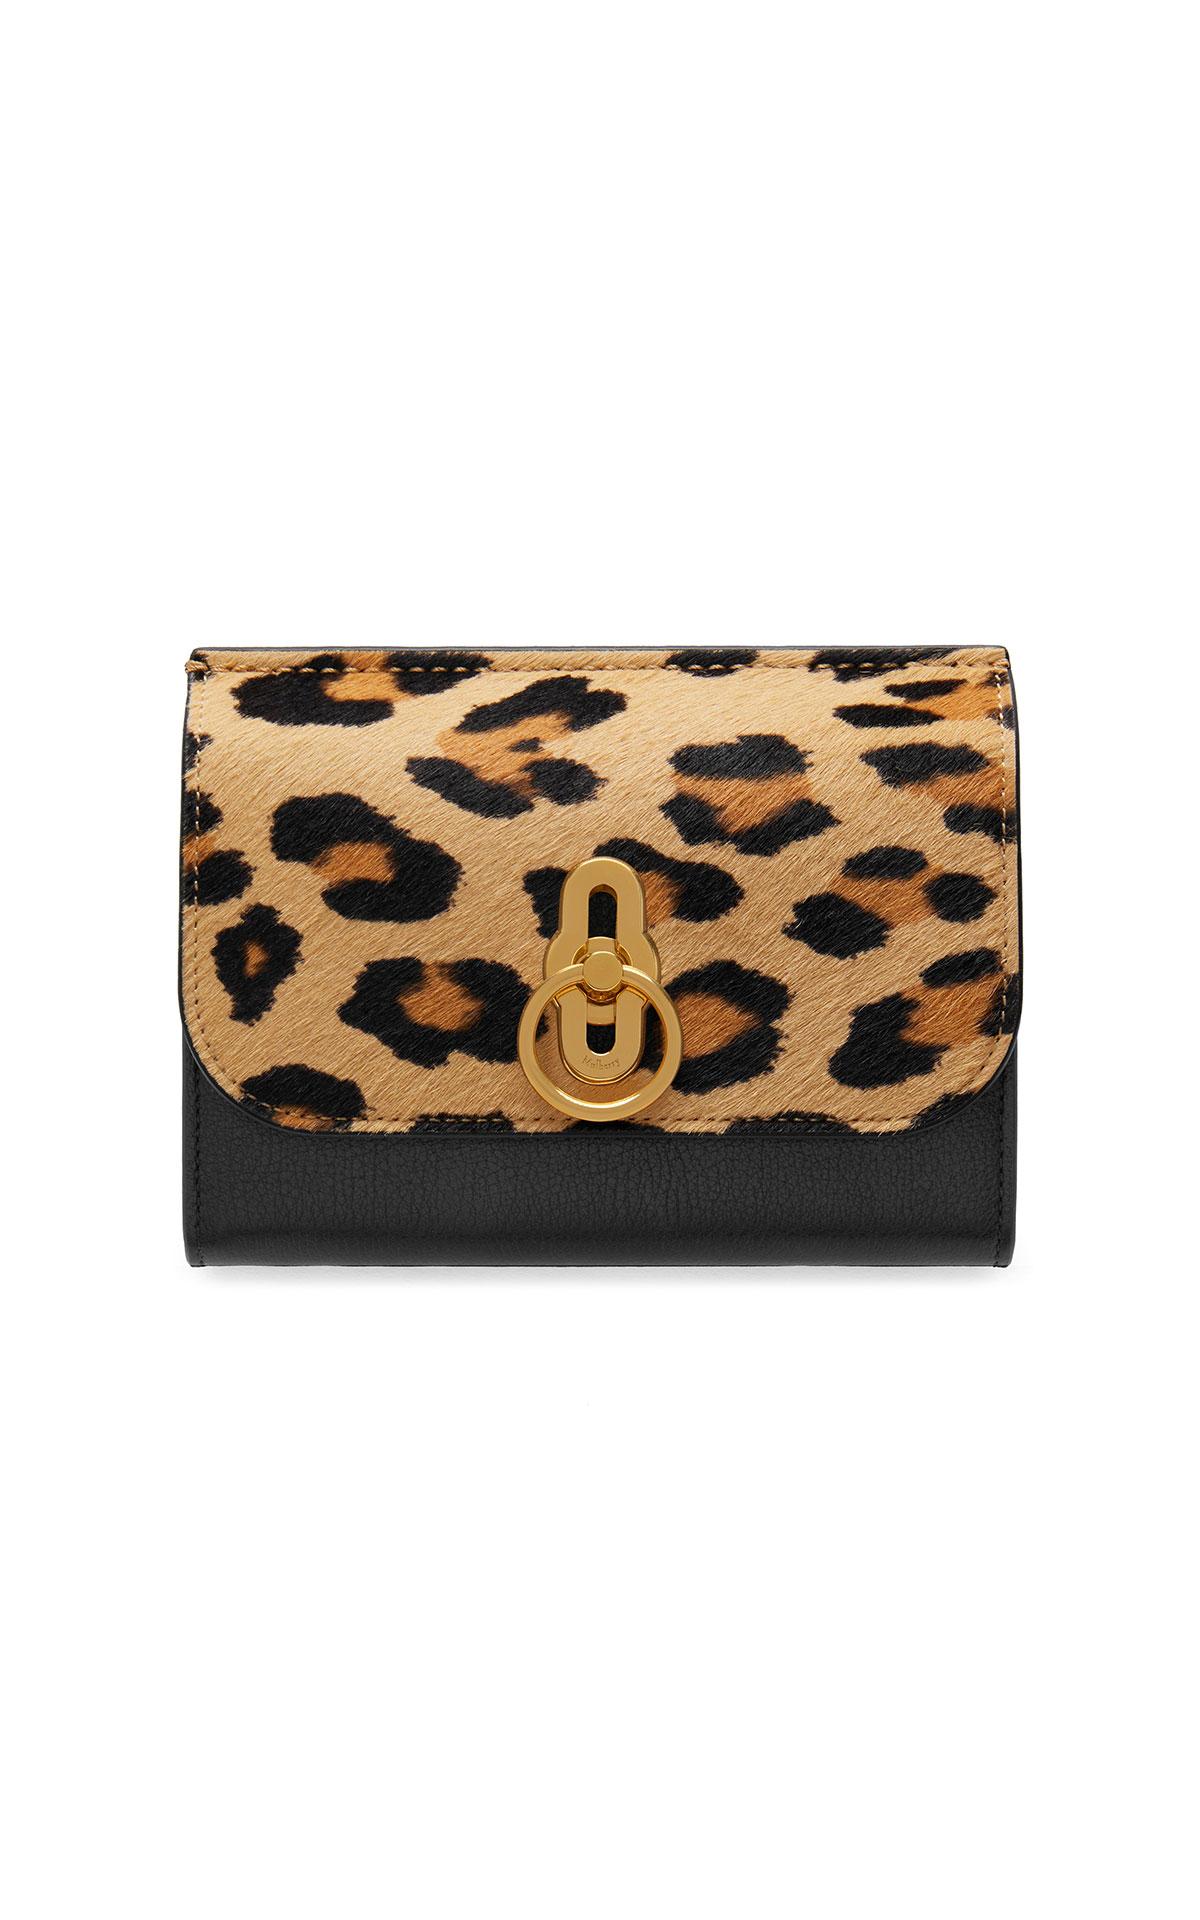 Mulberry Amberley medium wallet leopard & silky c camel and black from Bicester Village